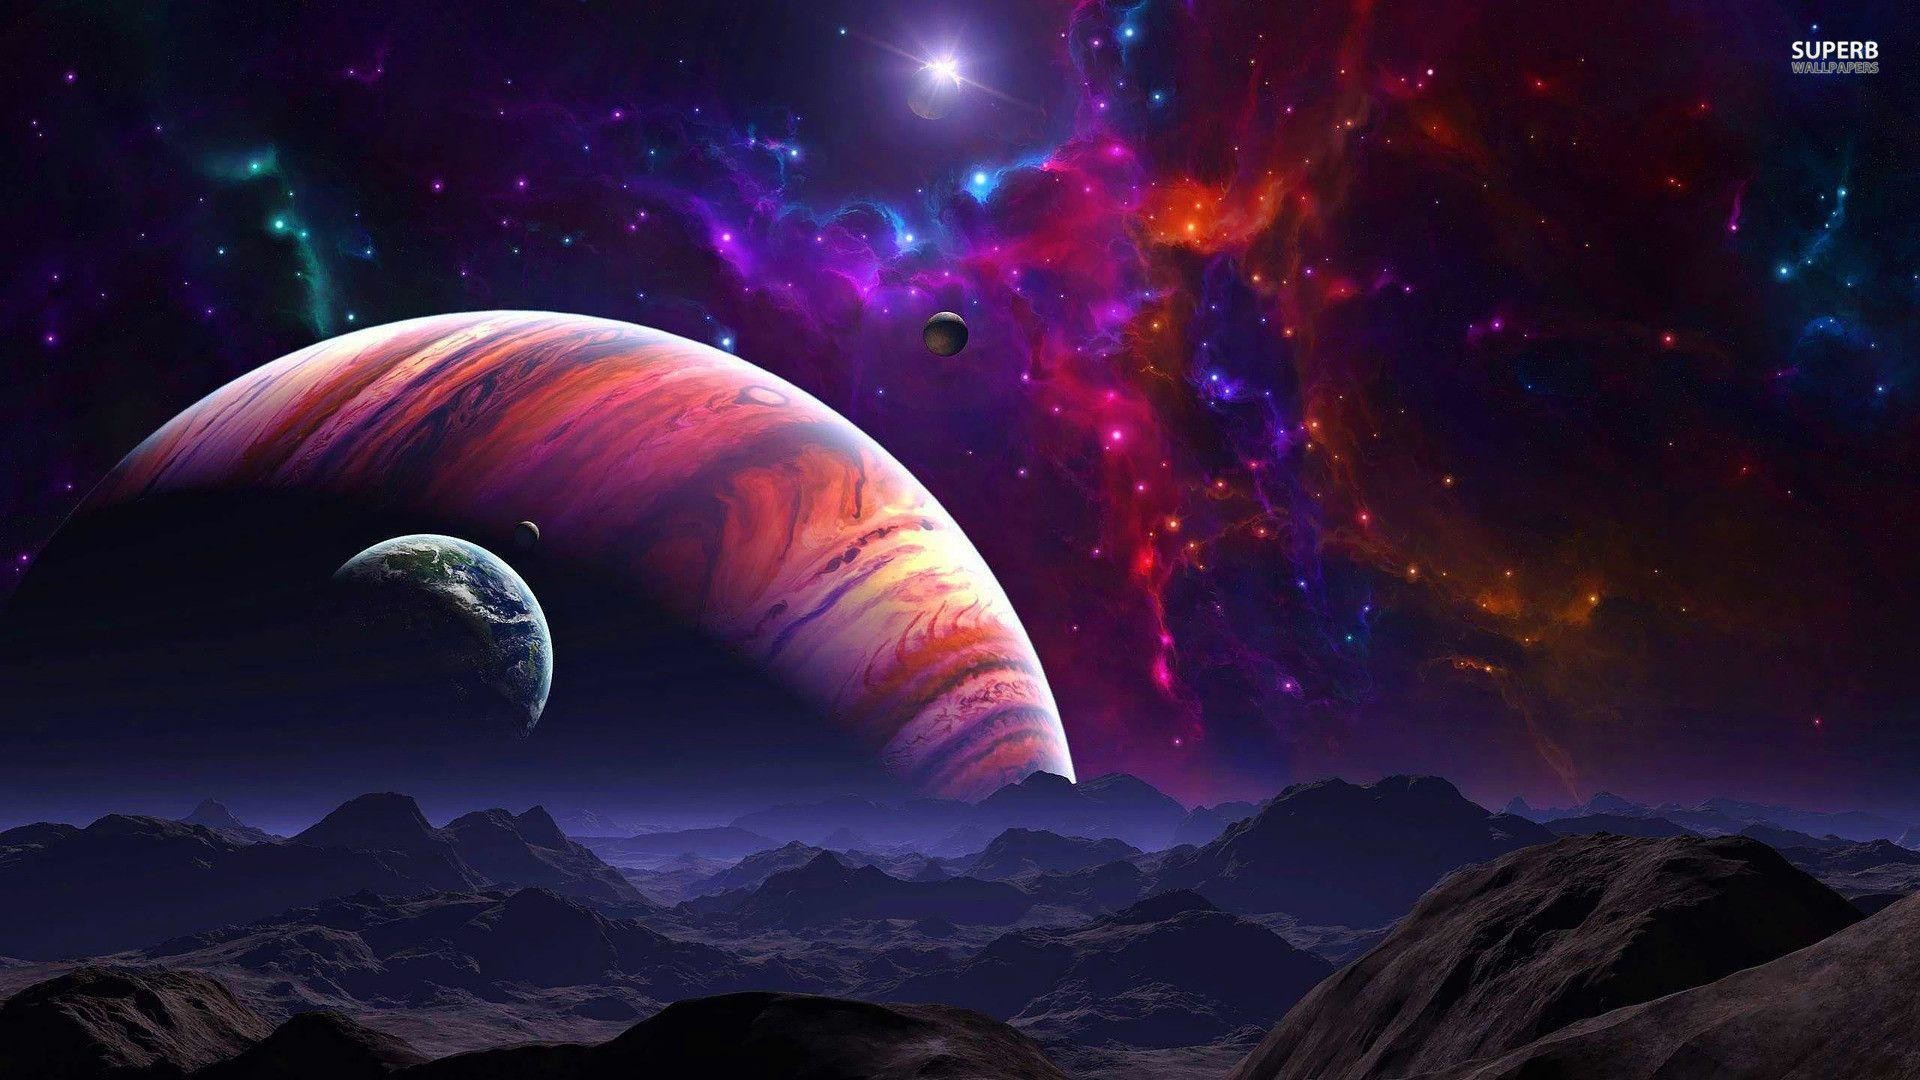 Purple Space Wallpaper Pictures 5 HD Wallpapers | lzamgs.